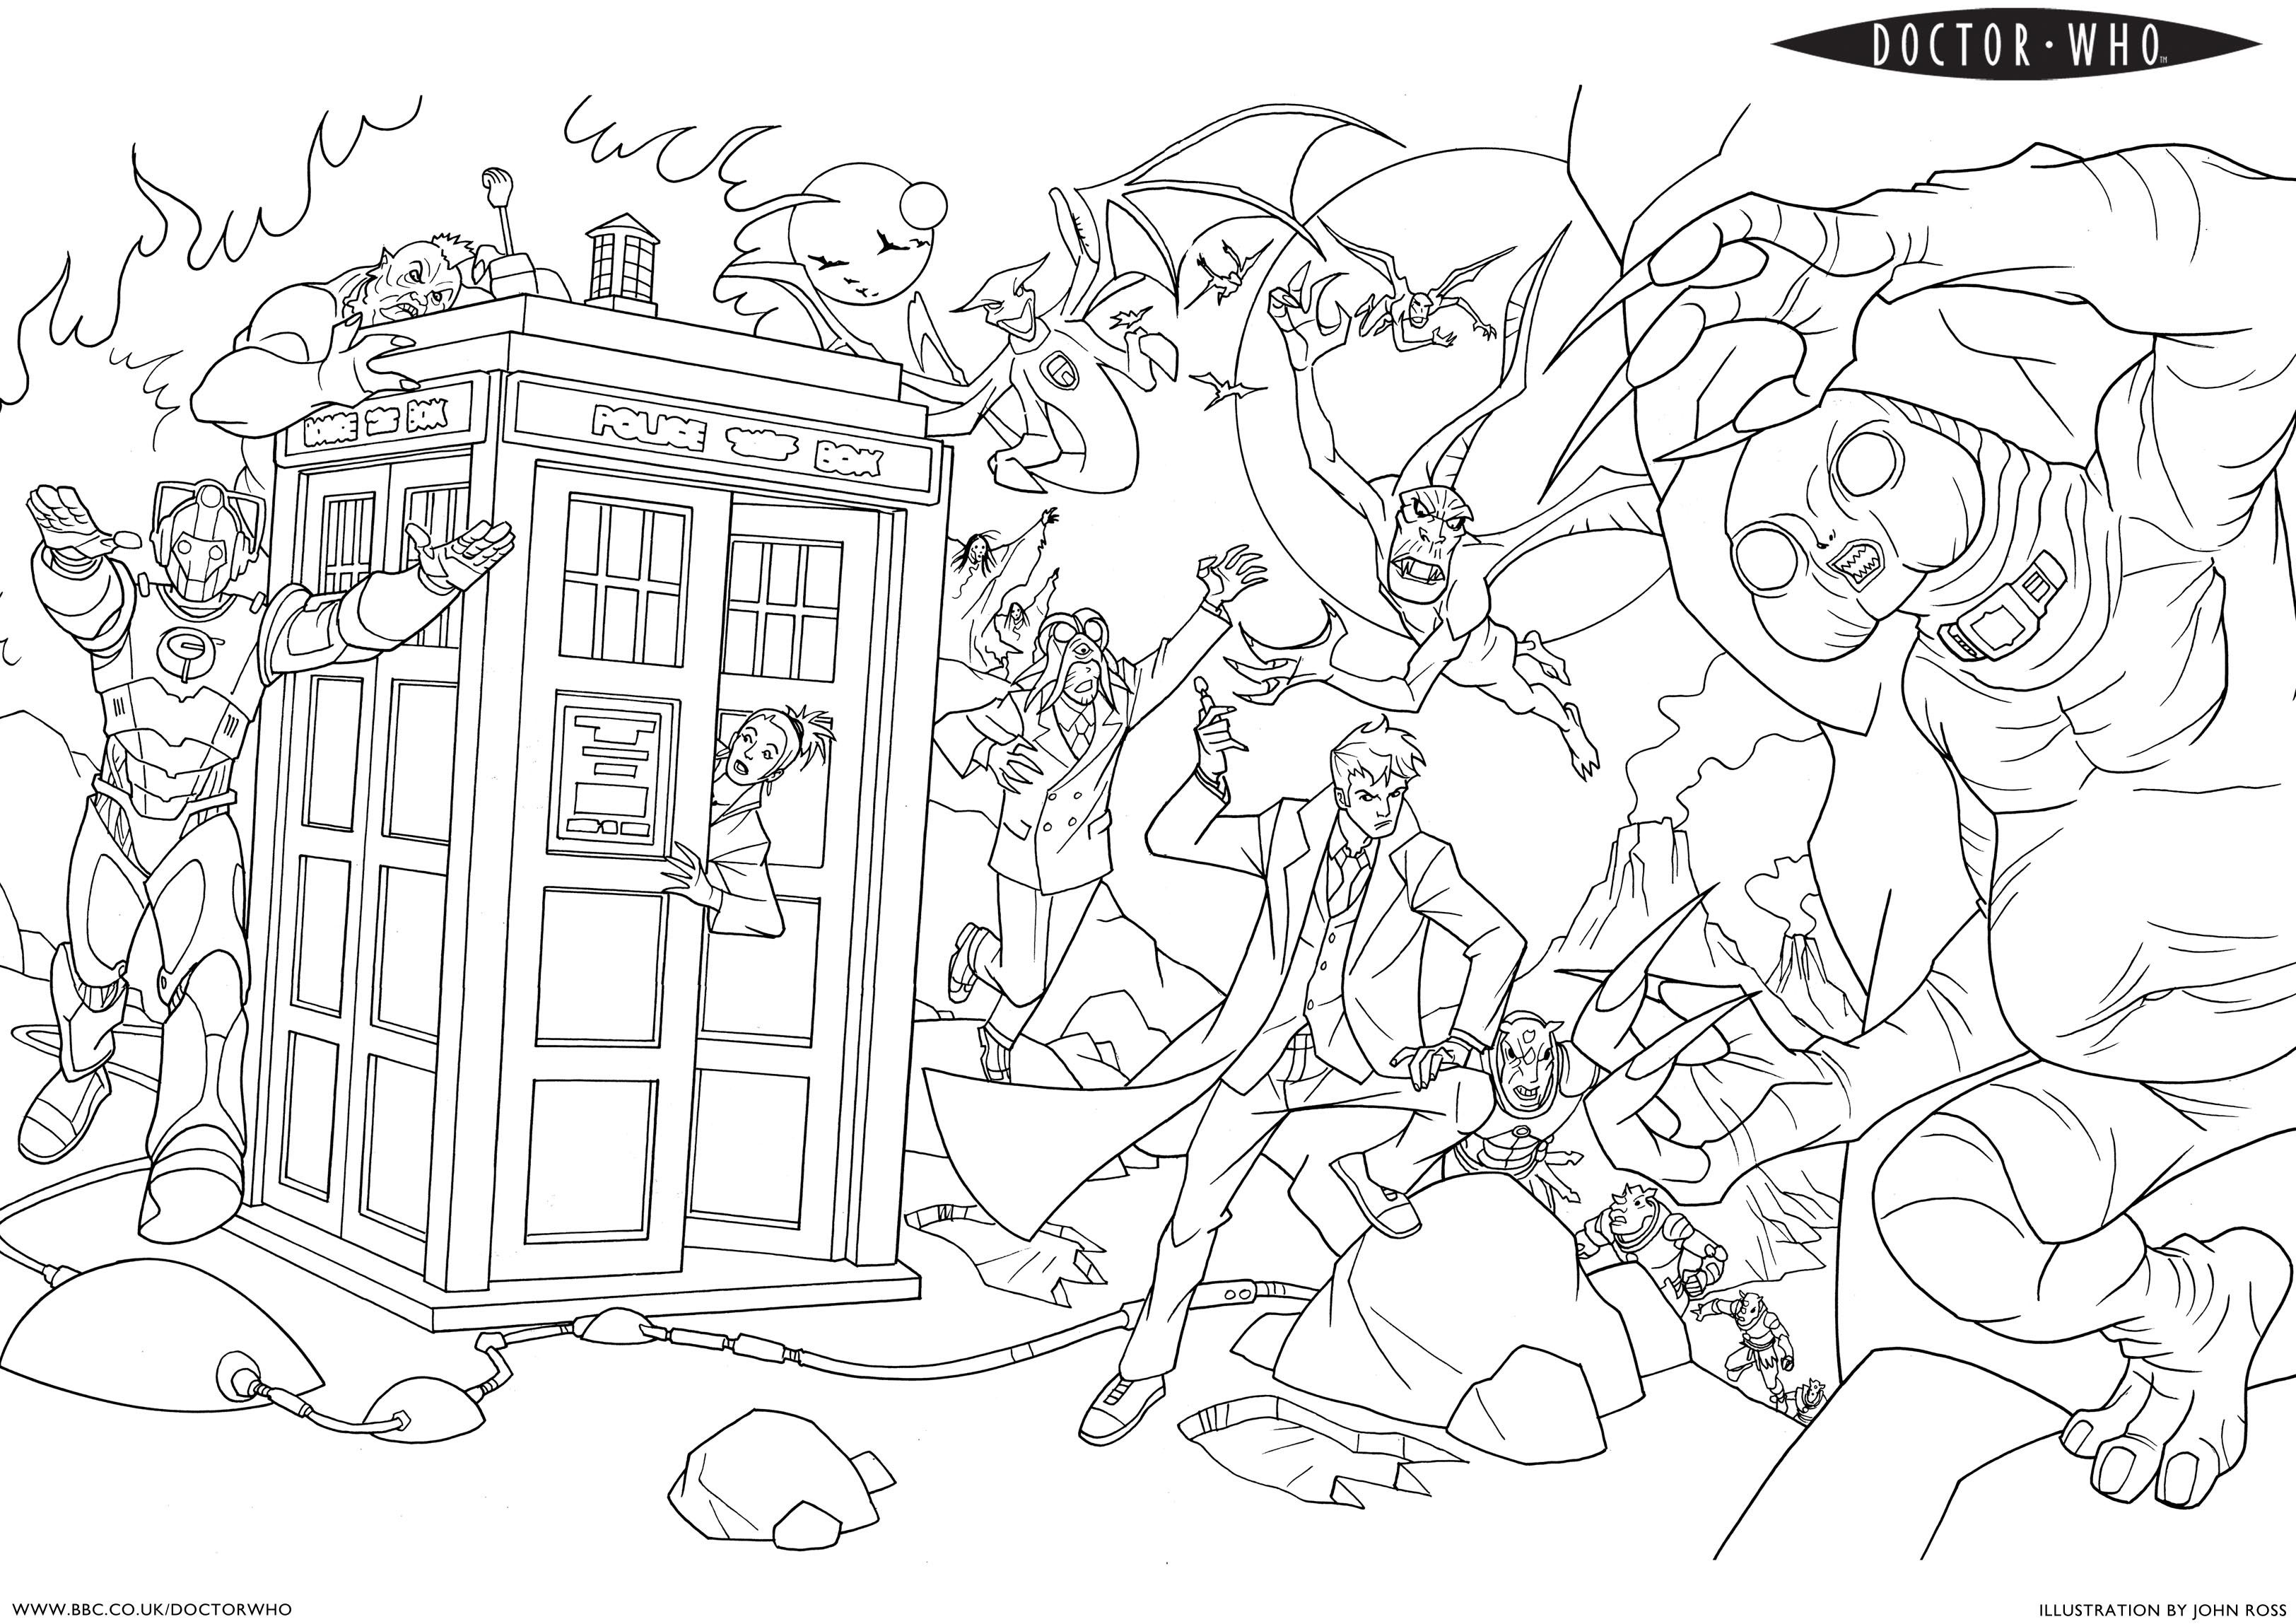 doctor who coloring pages BBC Doctor Who Colouring